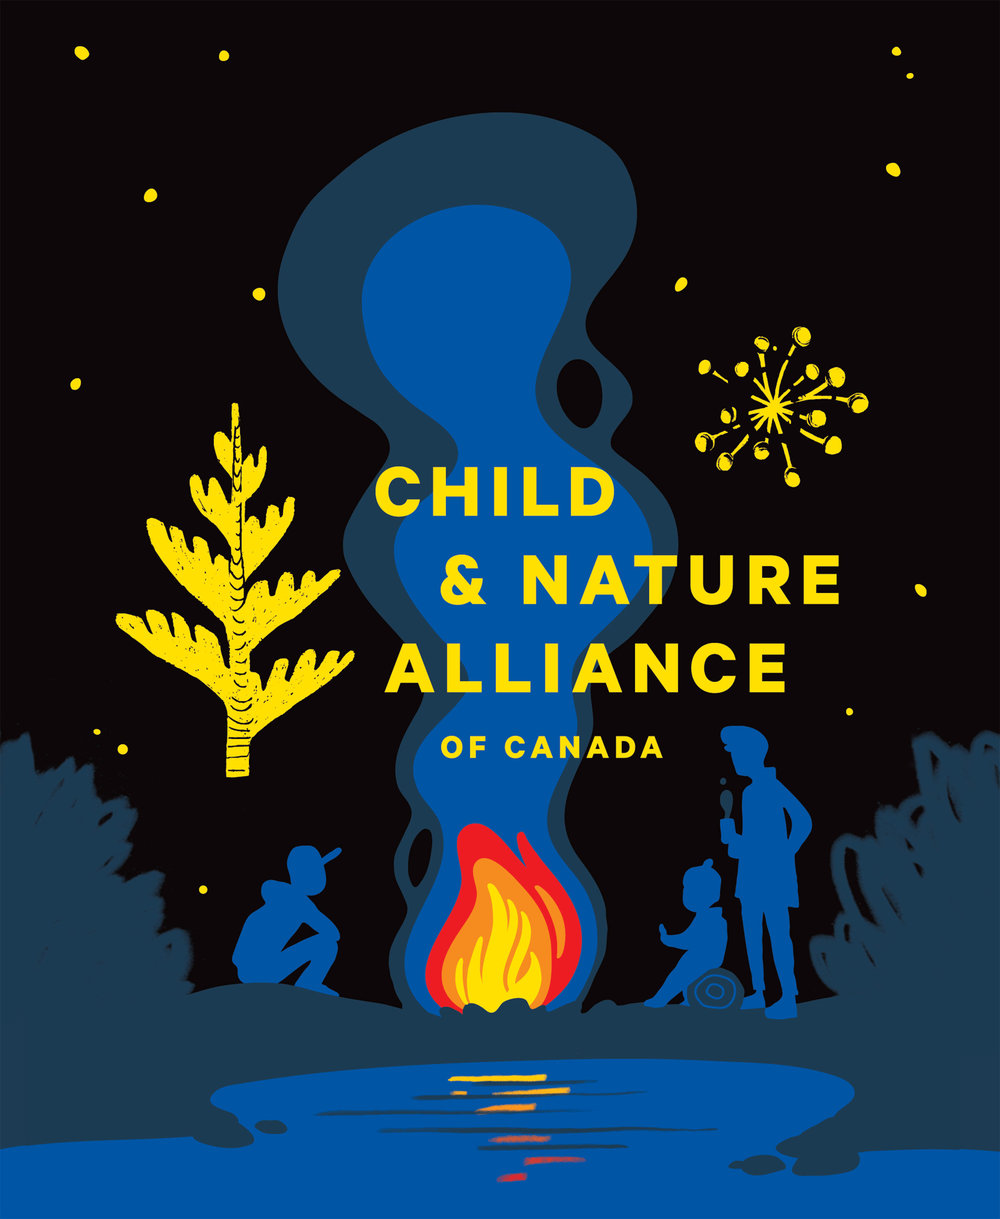 Jeff_Kulak-Child_and_Nature_Alliance_Canada01.jpg